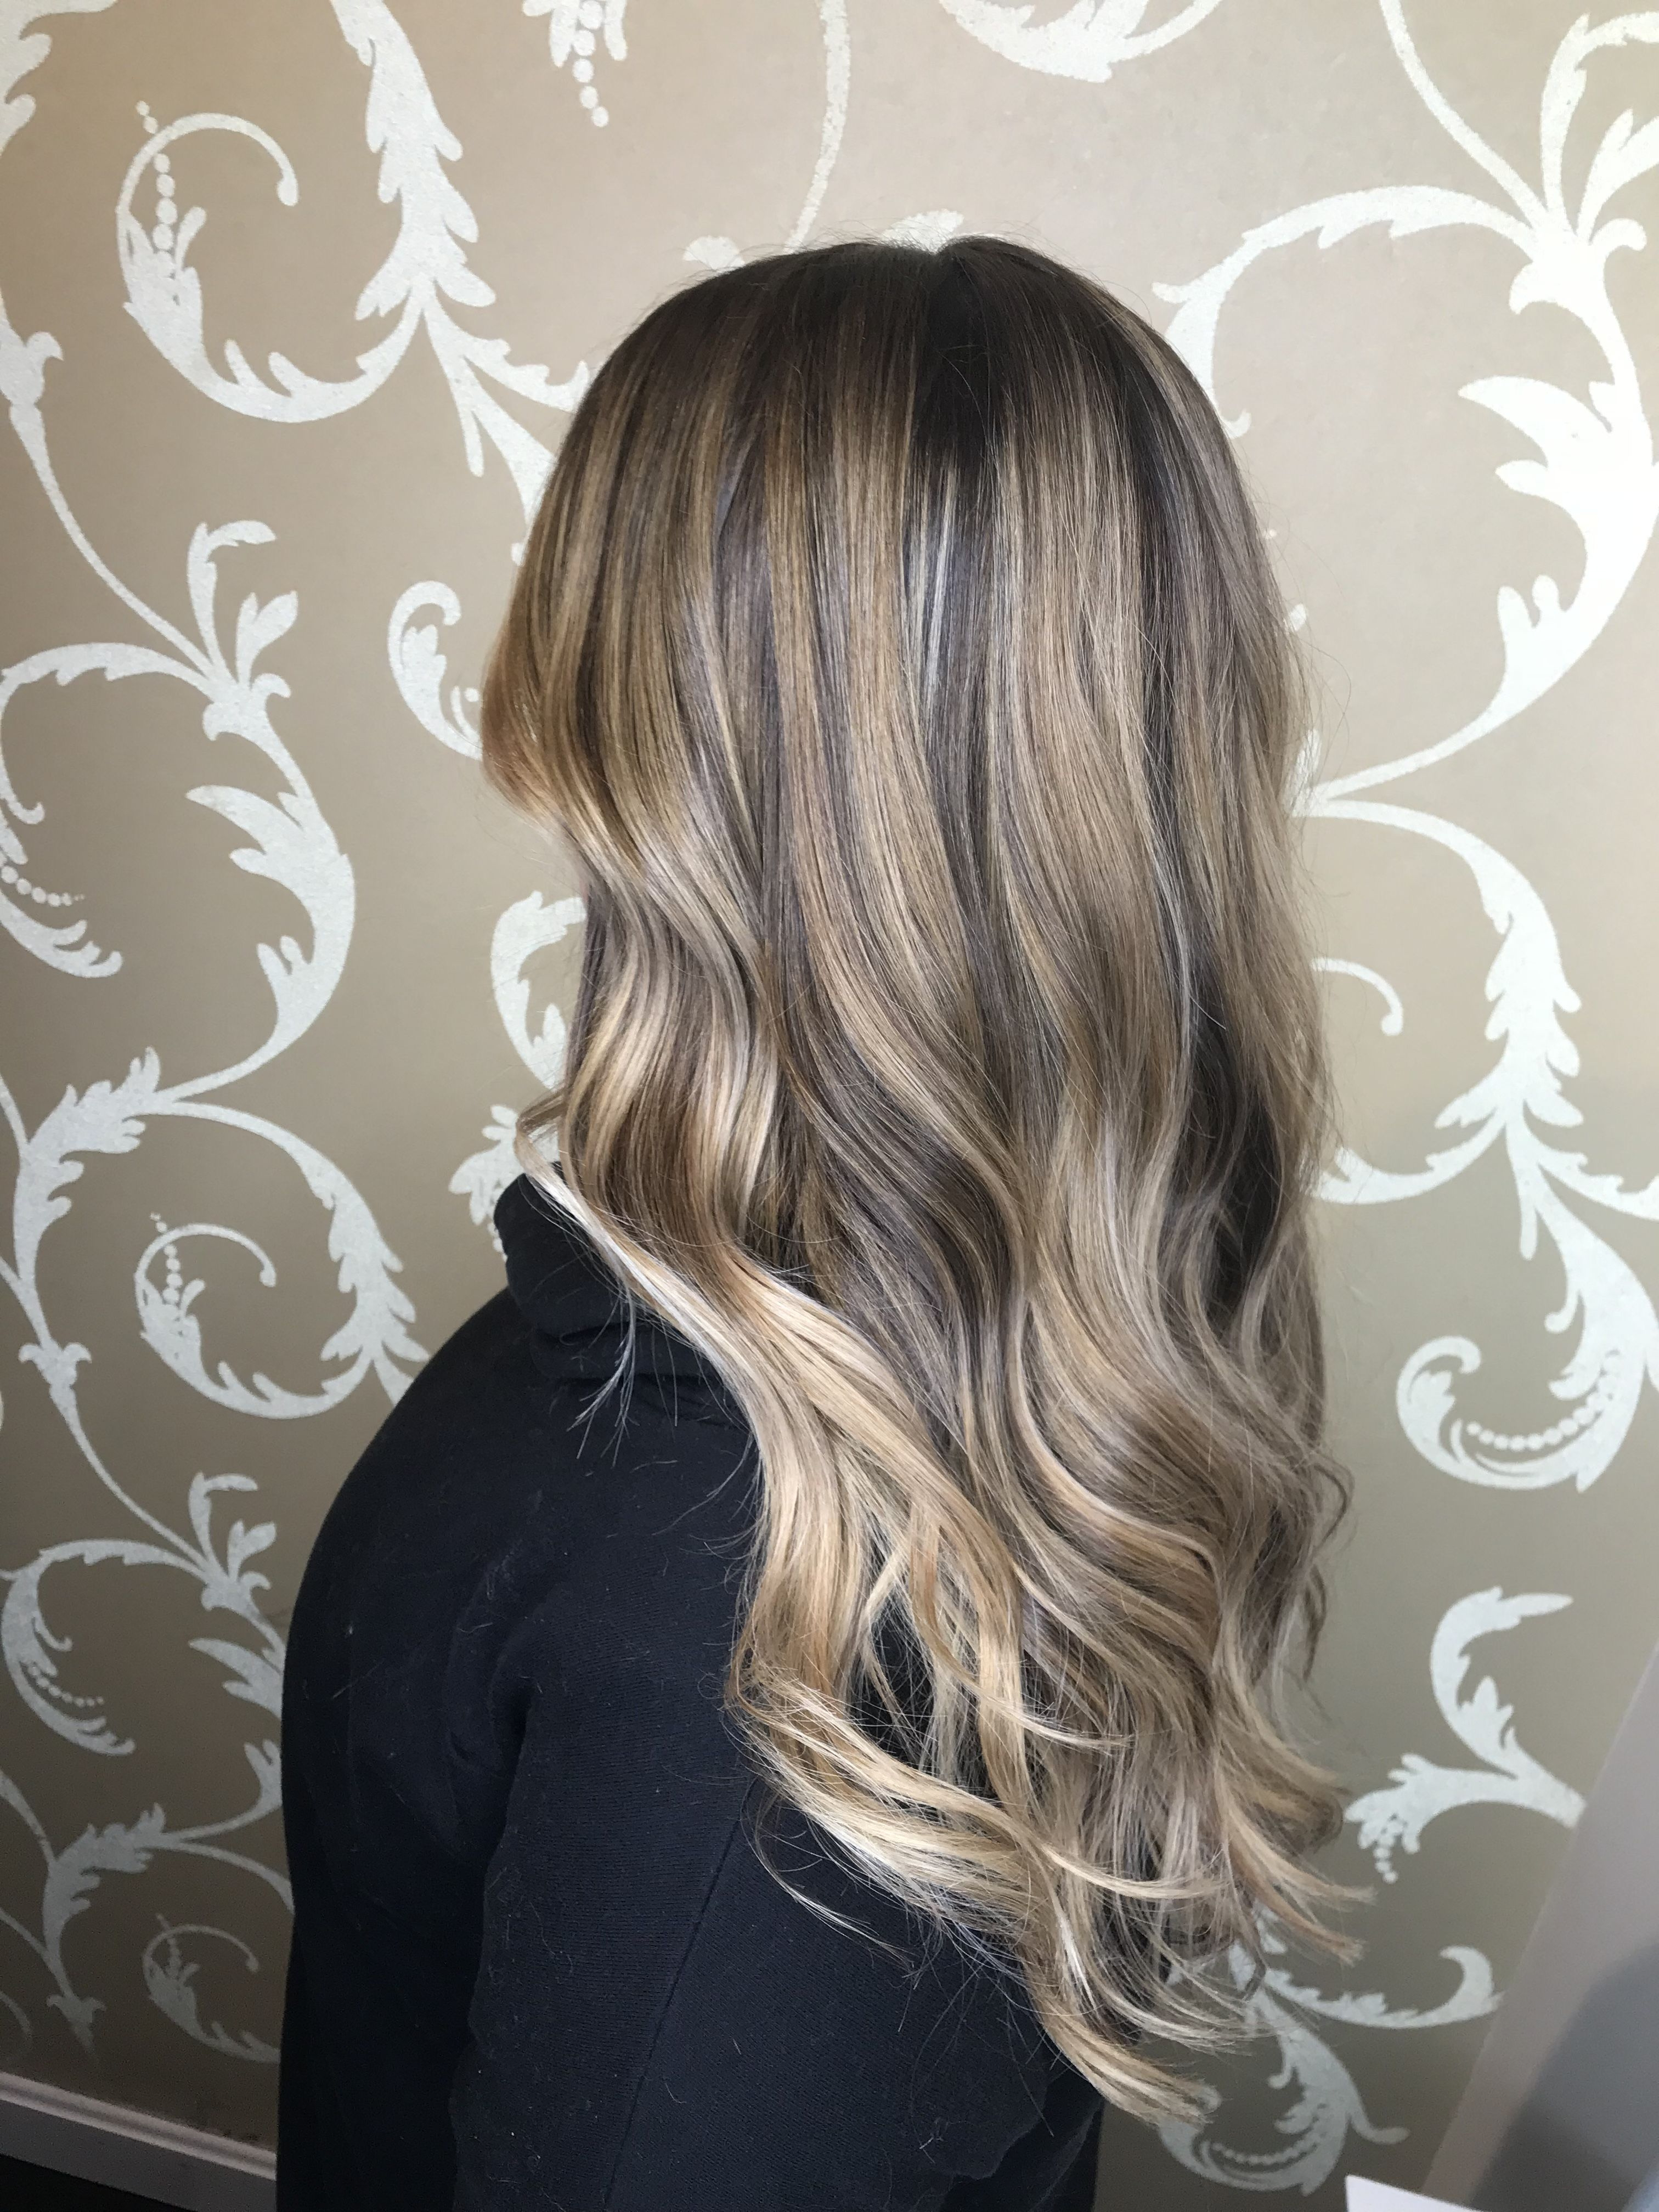 Hairstyles : Dishwater Waves Blonde Hairstyles Exceptional Regarding Sun Kissed Bob Haircuts (View 19 of 20)